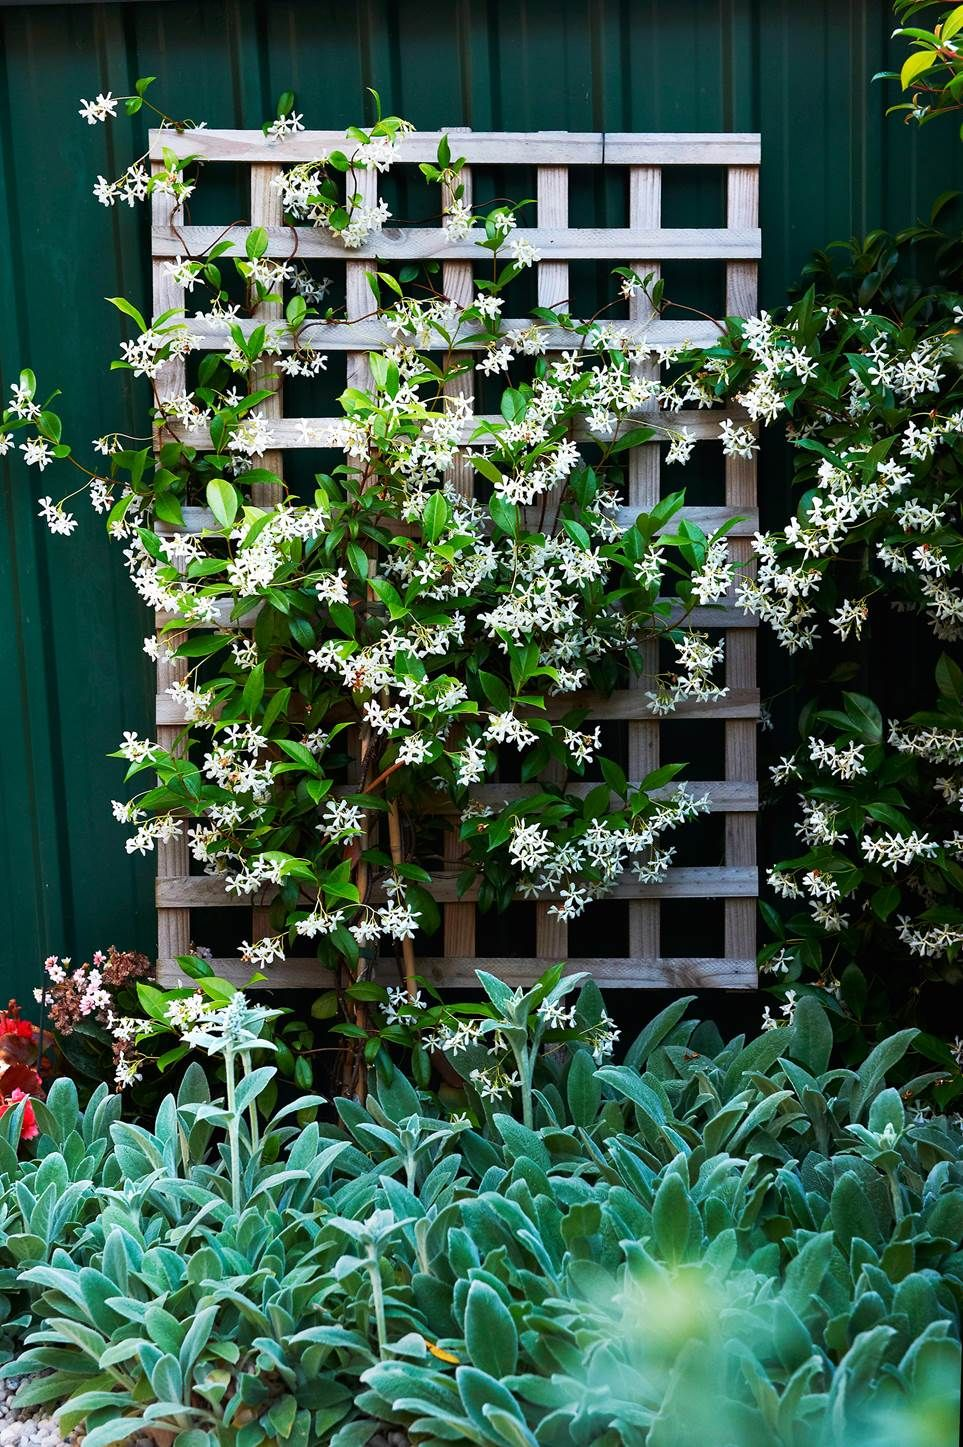 Climbing Plants 7 Fast Growing Climbers Vines And Creepers Climber Plants Diy Garden Trellis Climbing Flowers